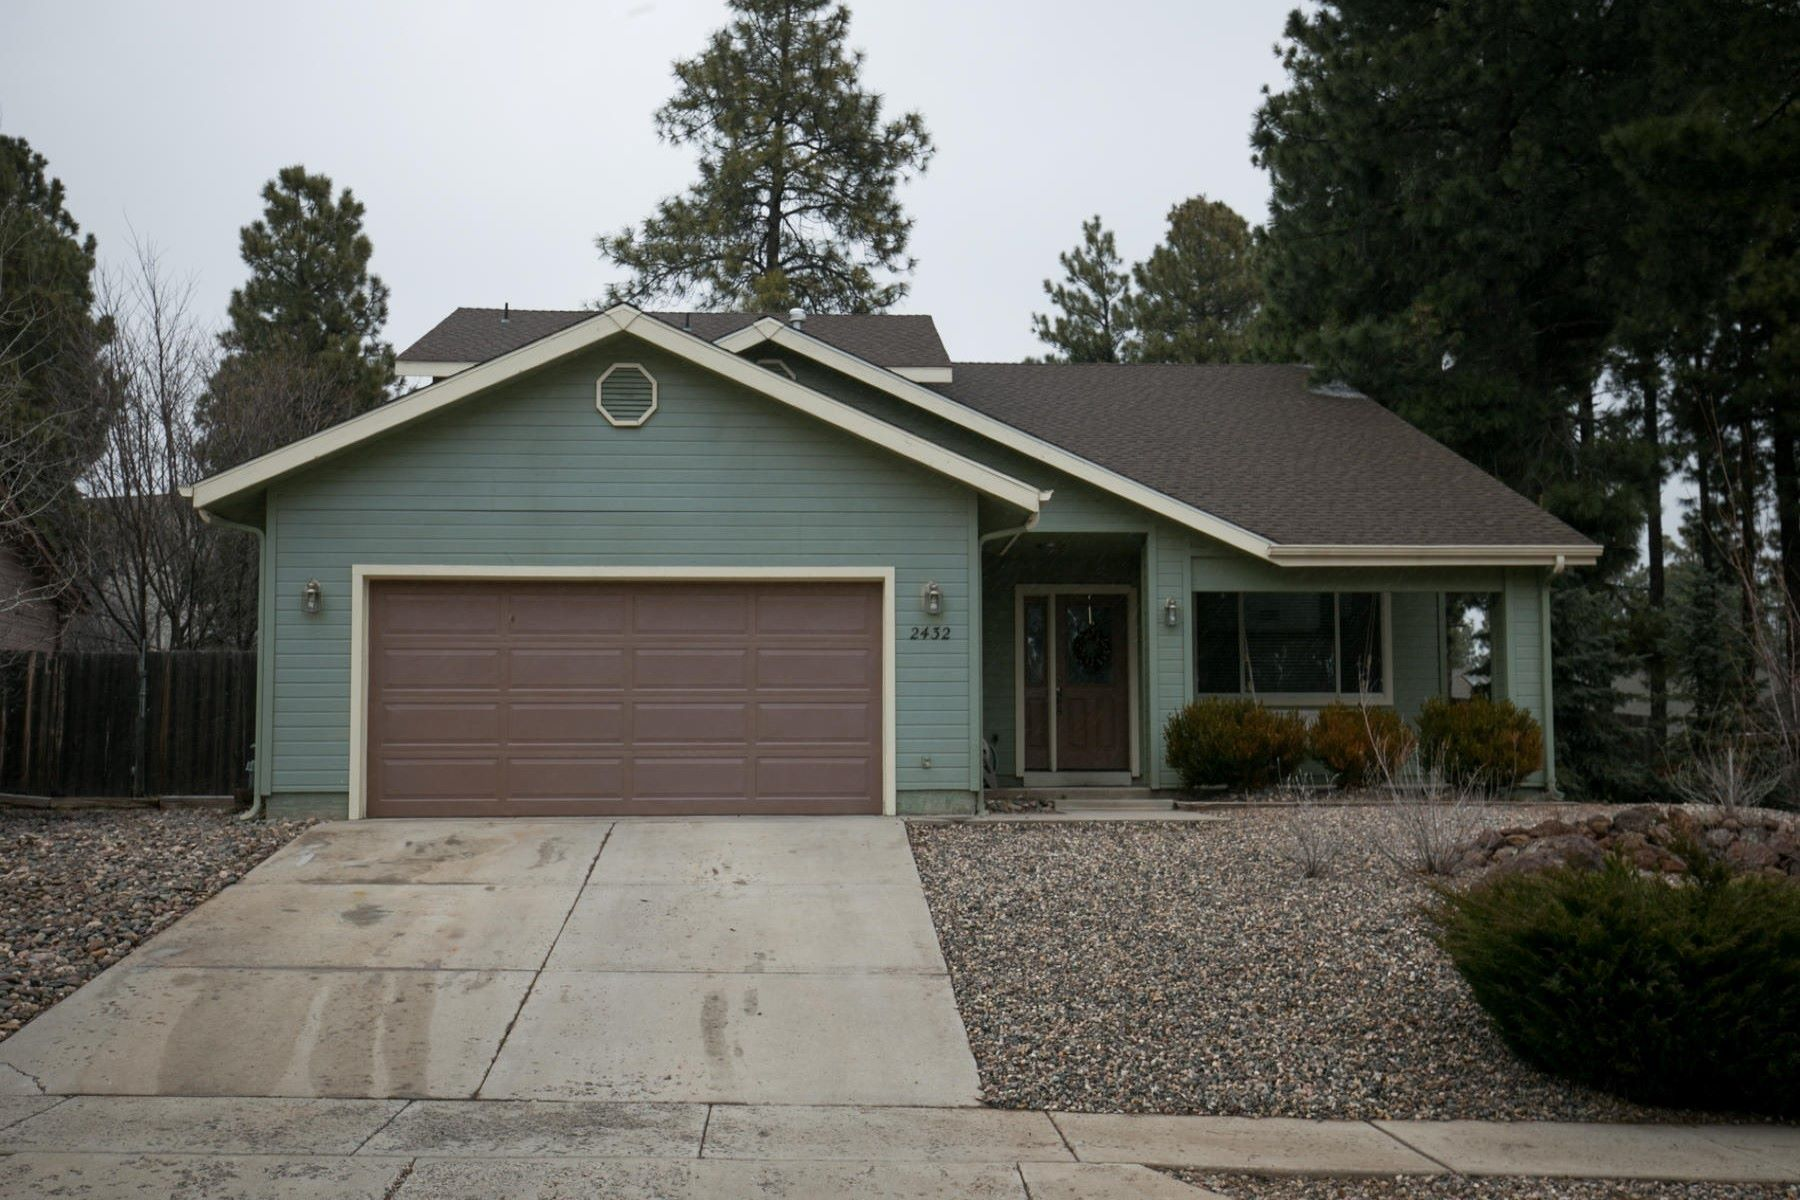 Single Family Home for Sale at Spectacular home in the ever-popular Boulder Pointe neighborhood 2432 S Rocking Horse Ln Flagstaff, Arizona, 86001 United States